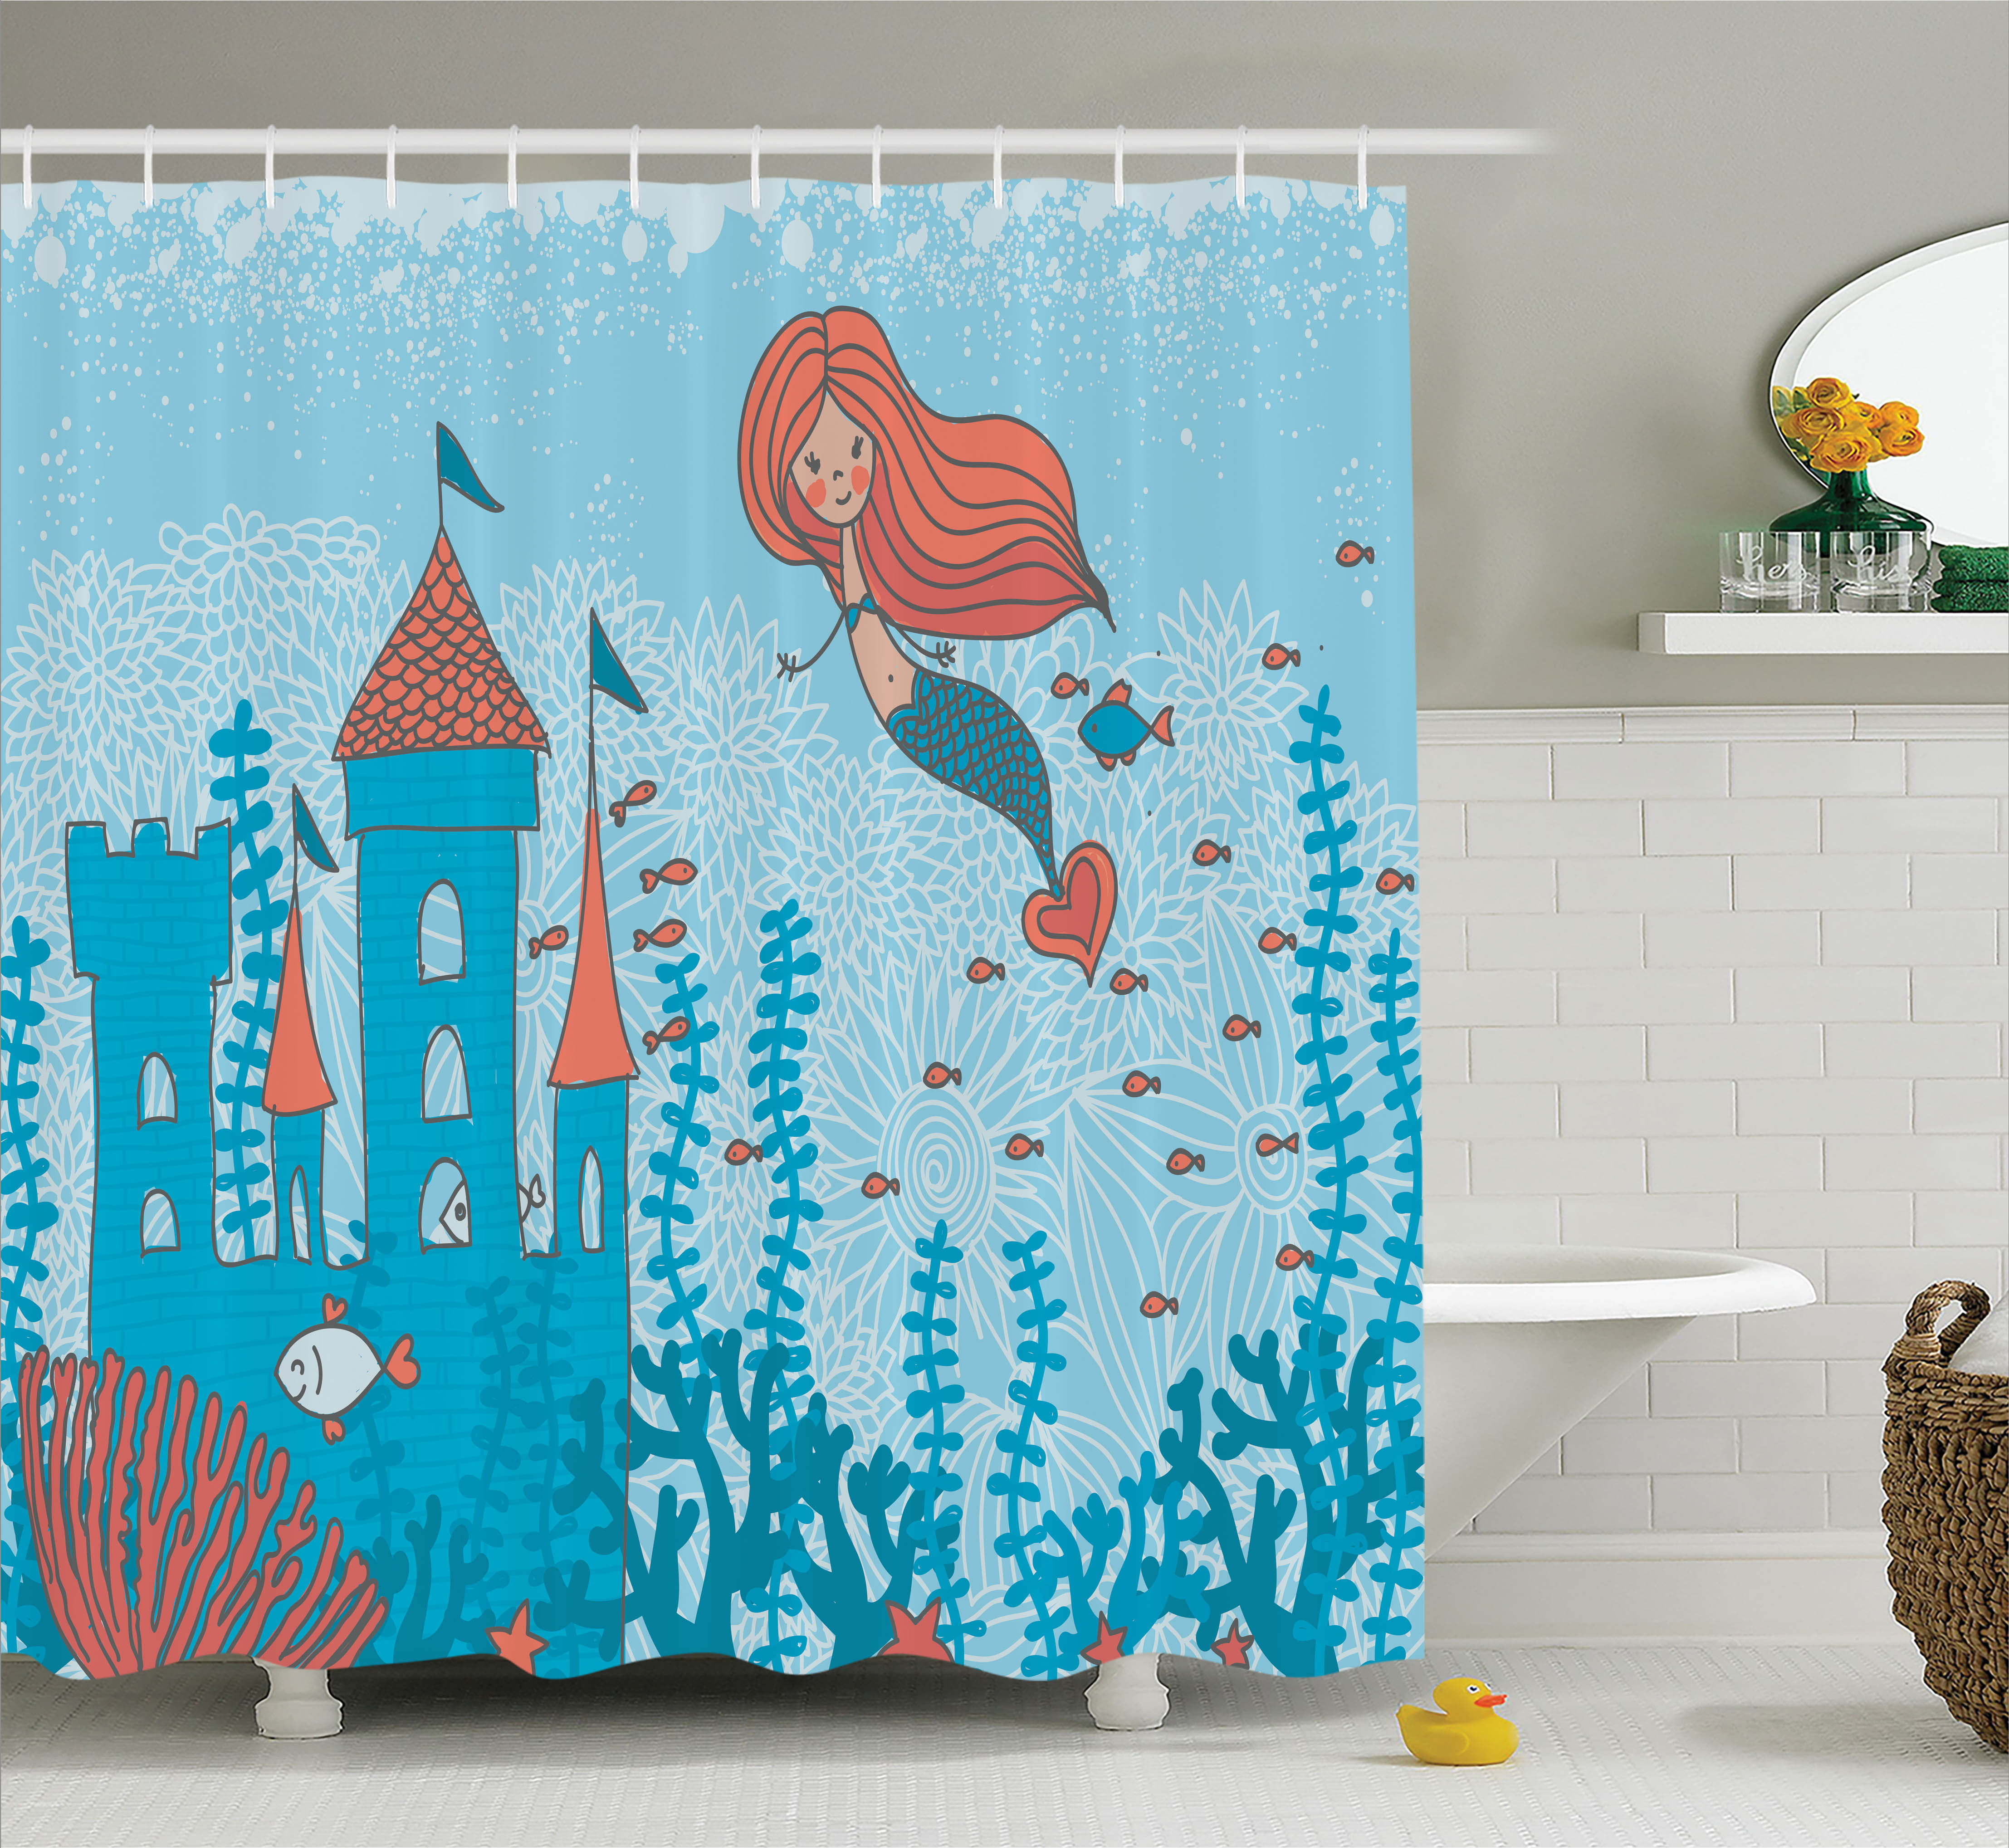 Superieur Kids Shower Curtain Set, Illustration Art Of Little Mermaid Under The Sea  In Corals With